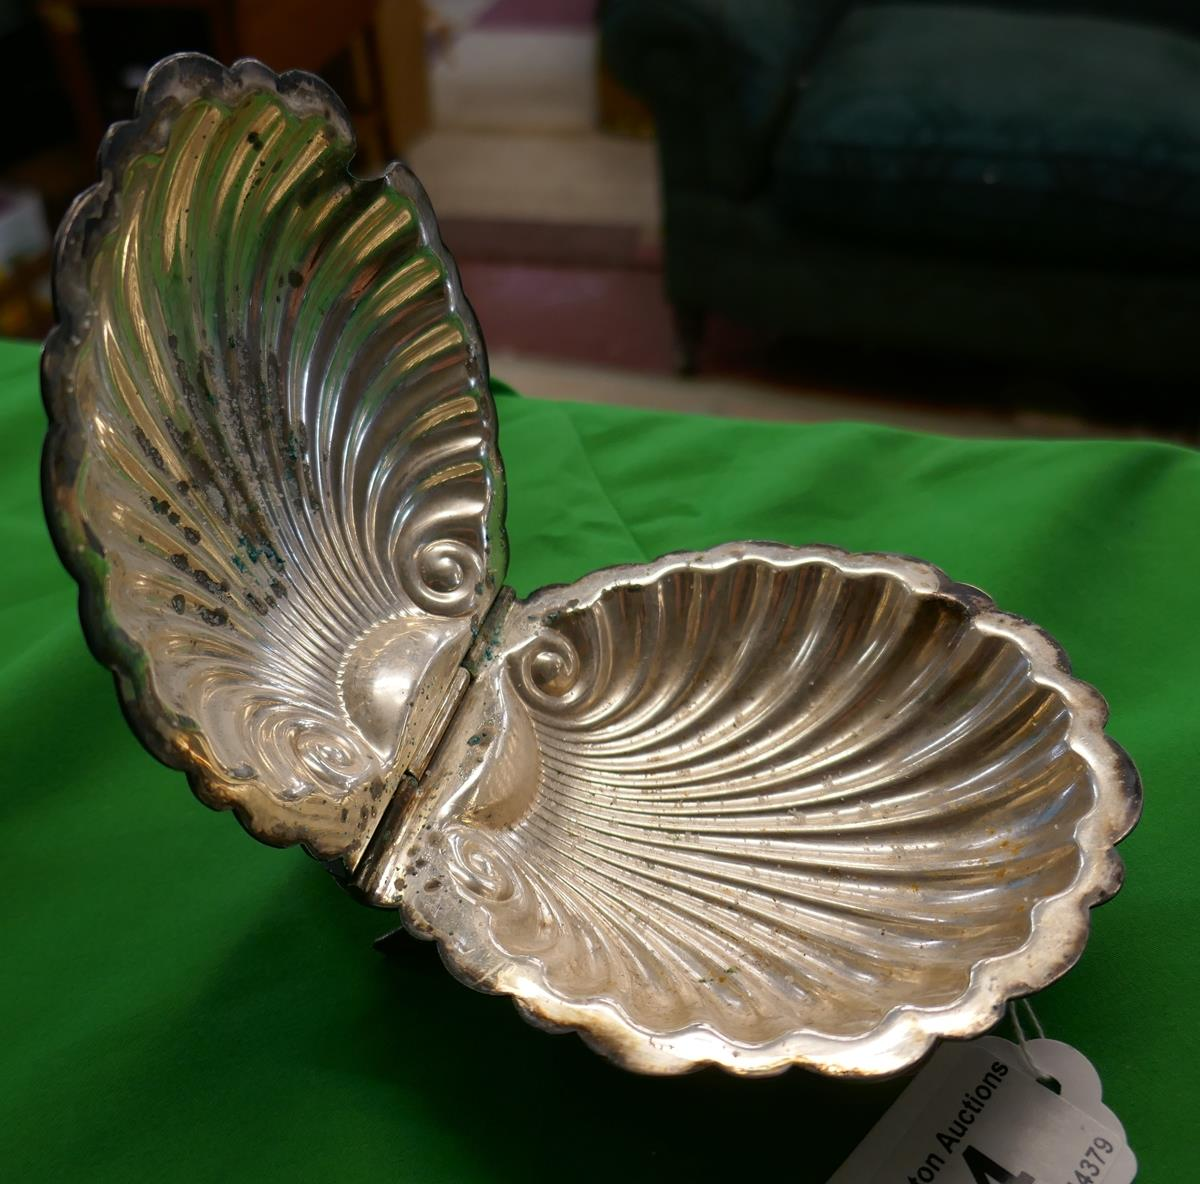 Mappin & Webb silver plate bon bon dish with cover - Image 4 of 4